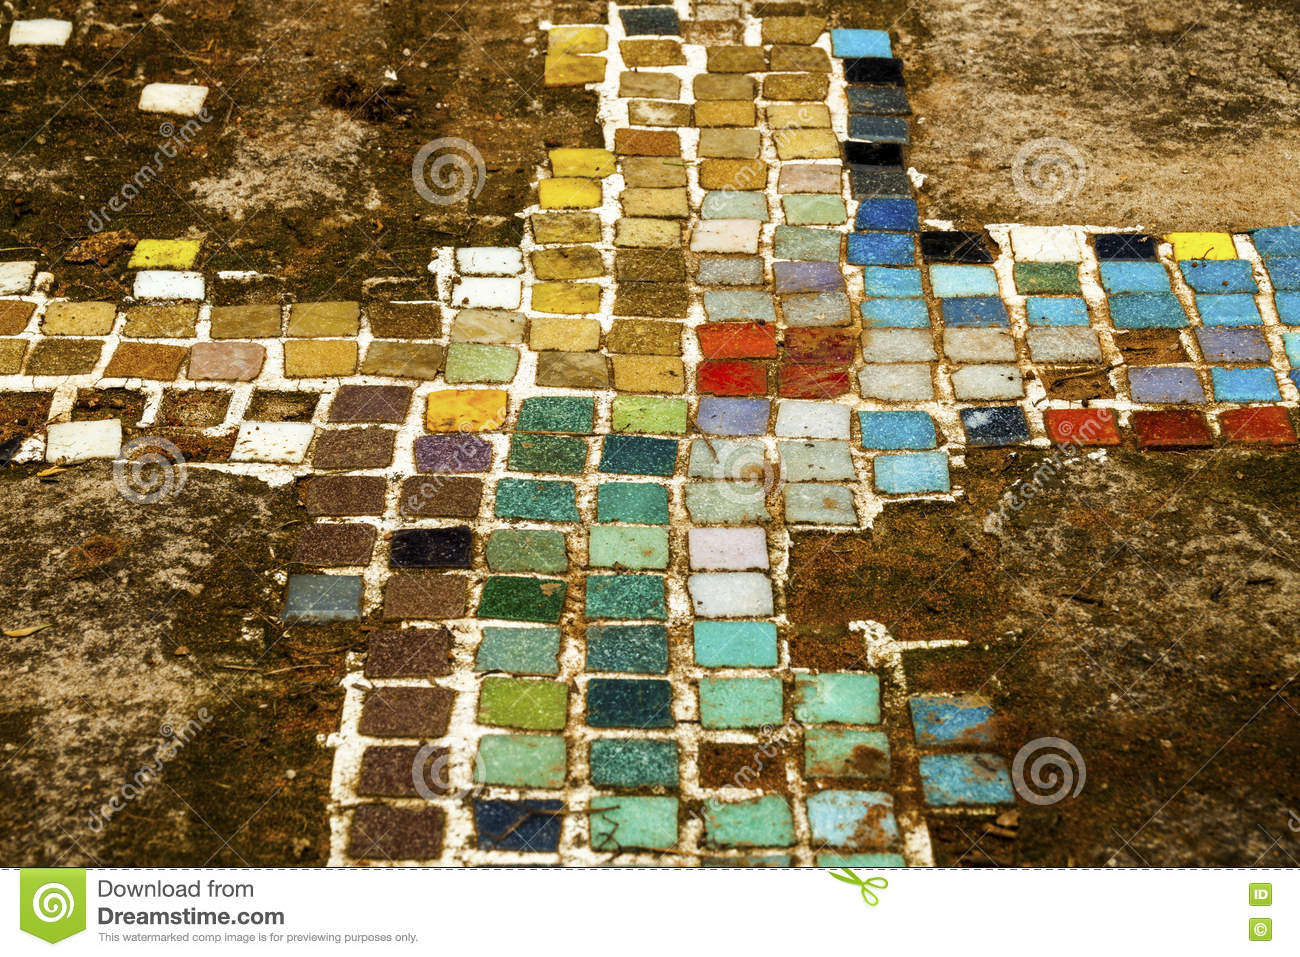 Colorful Old Mosiac Tiles On Sandy Outdoor Garden Path Stock Image ...